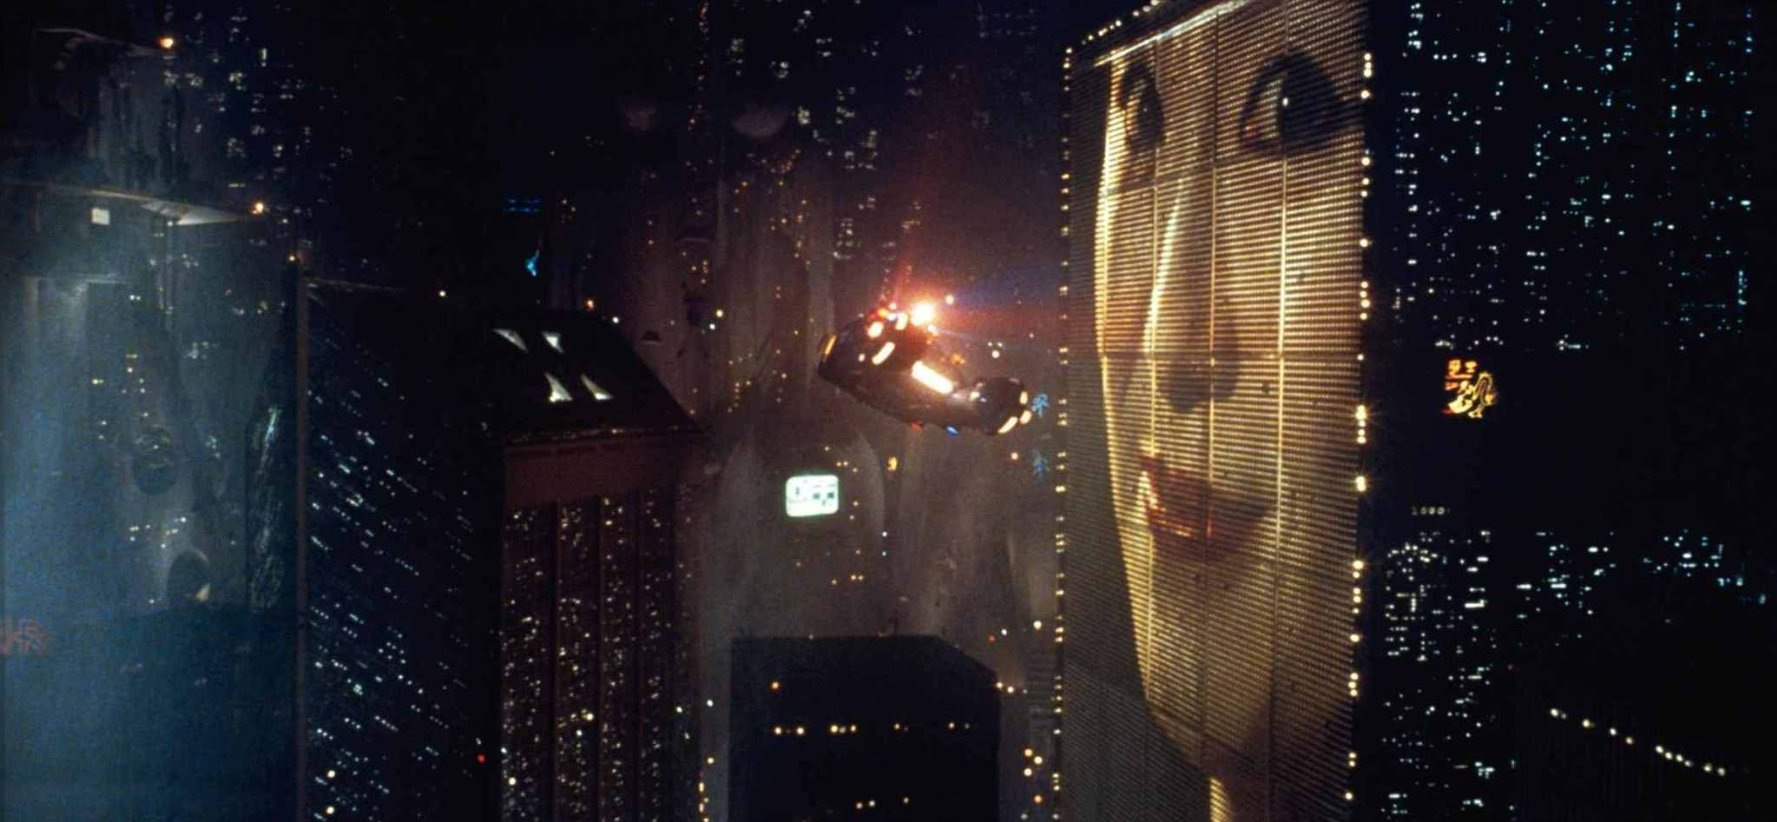 Actress Alexis Rhee portrays the geisha depicted in Blade Runner. (Warner Bros.)